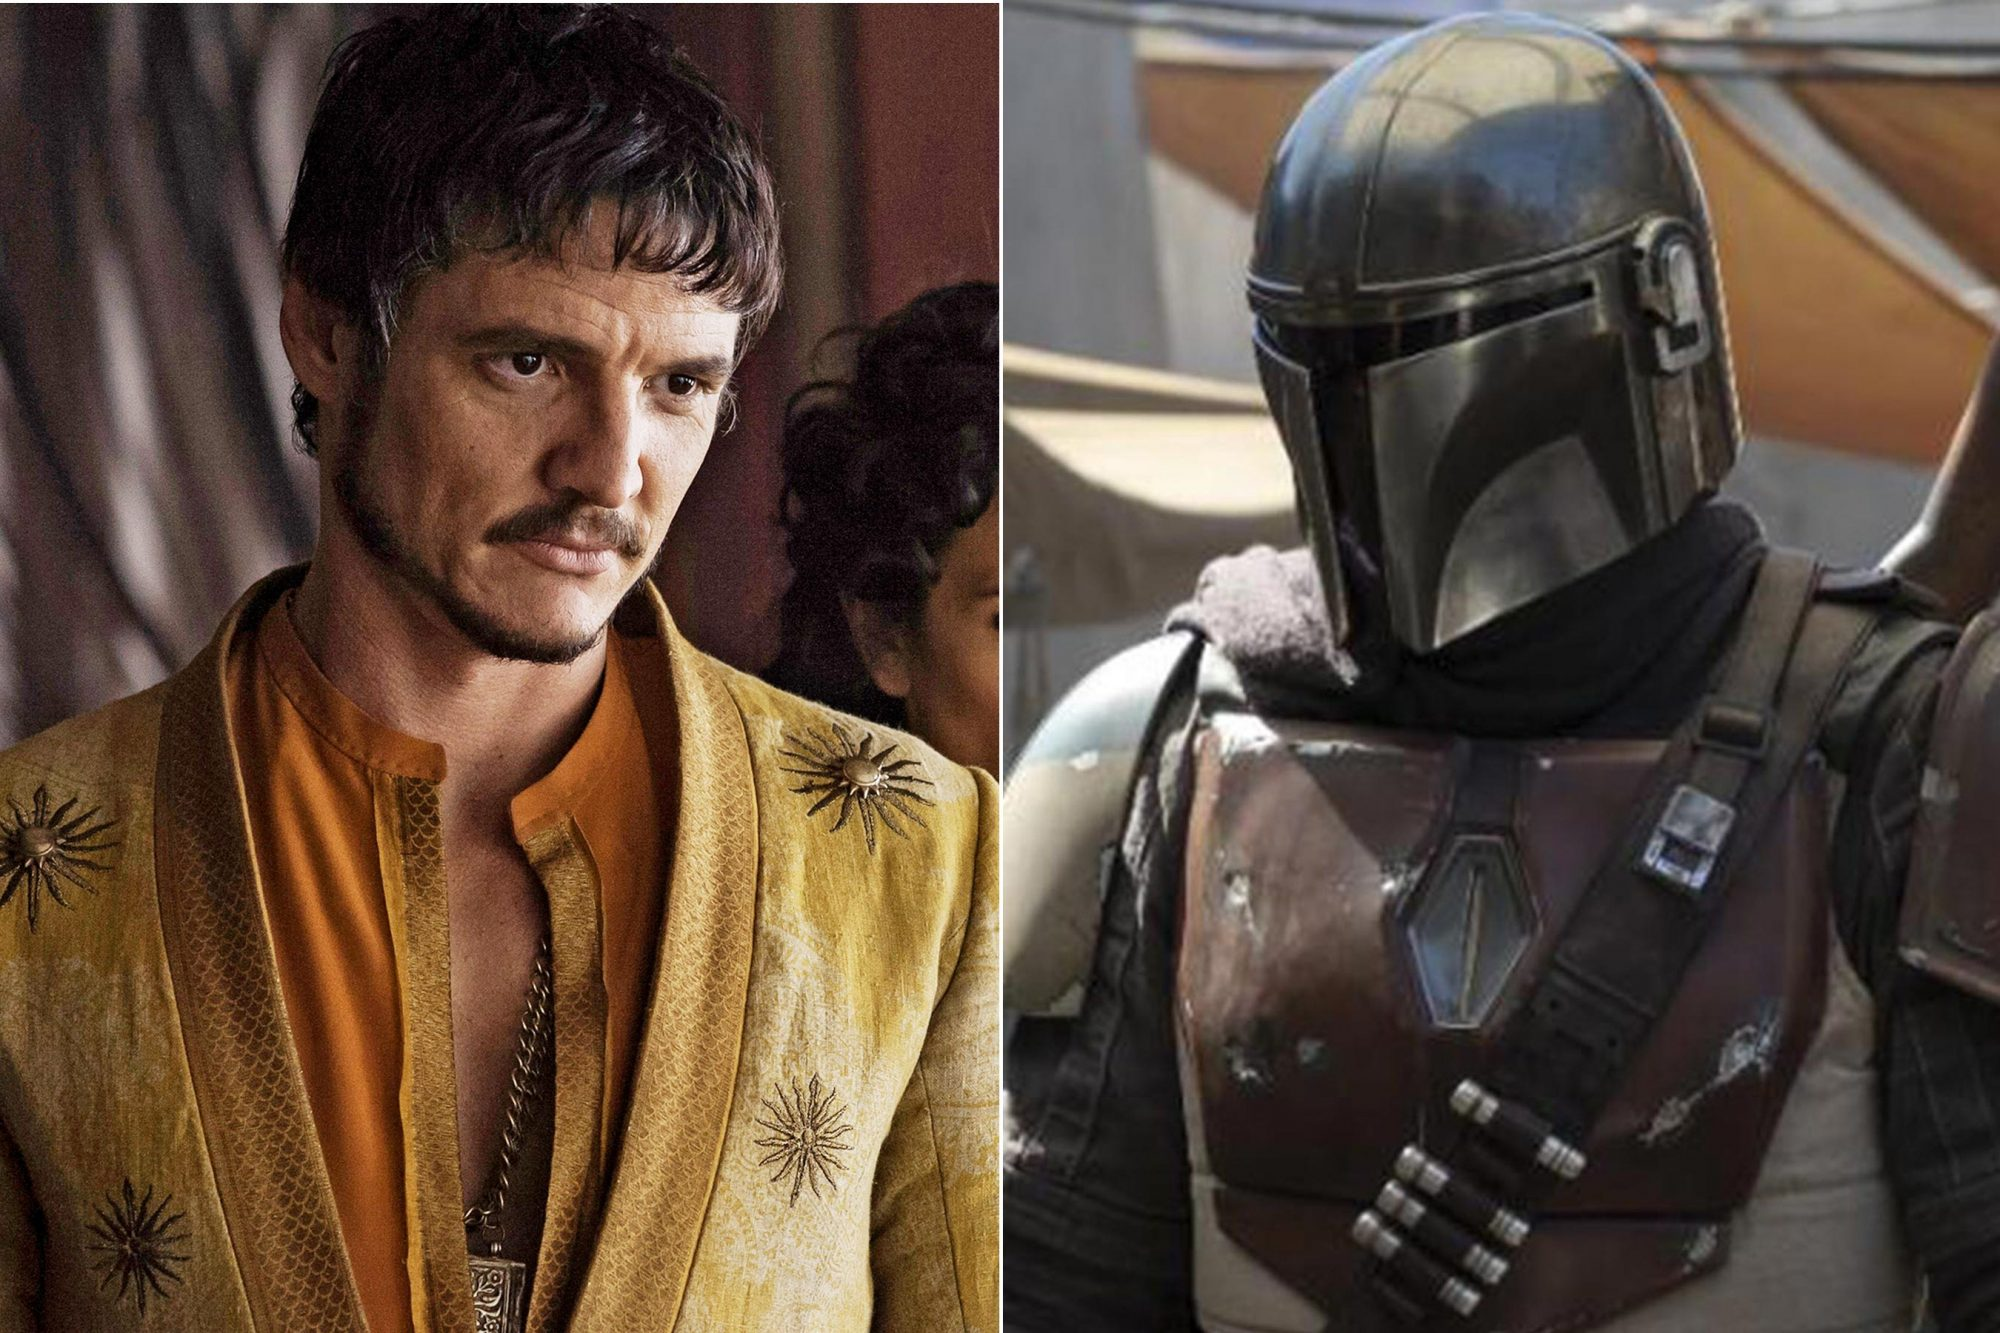 GAME OF THRONES (2014) Season 4 Air Date: 2014 Pictured: Pedro Pascal as Oberyn Martell Star Wars The Mandalorian first look CR: Lucasfilm